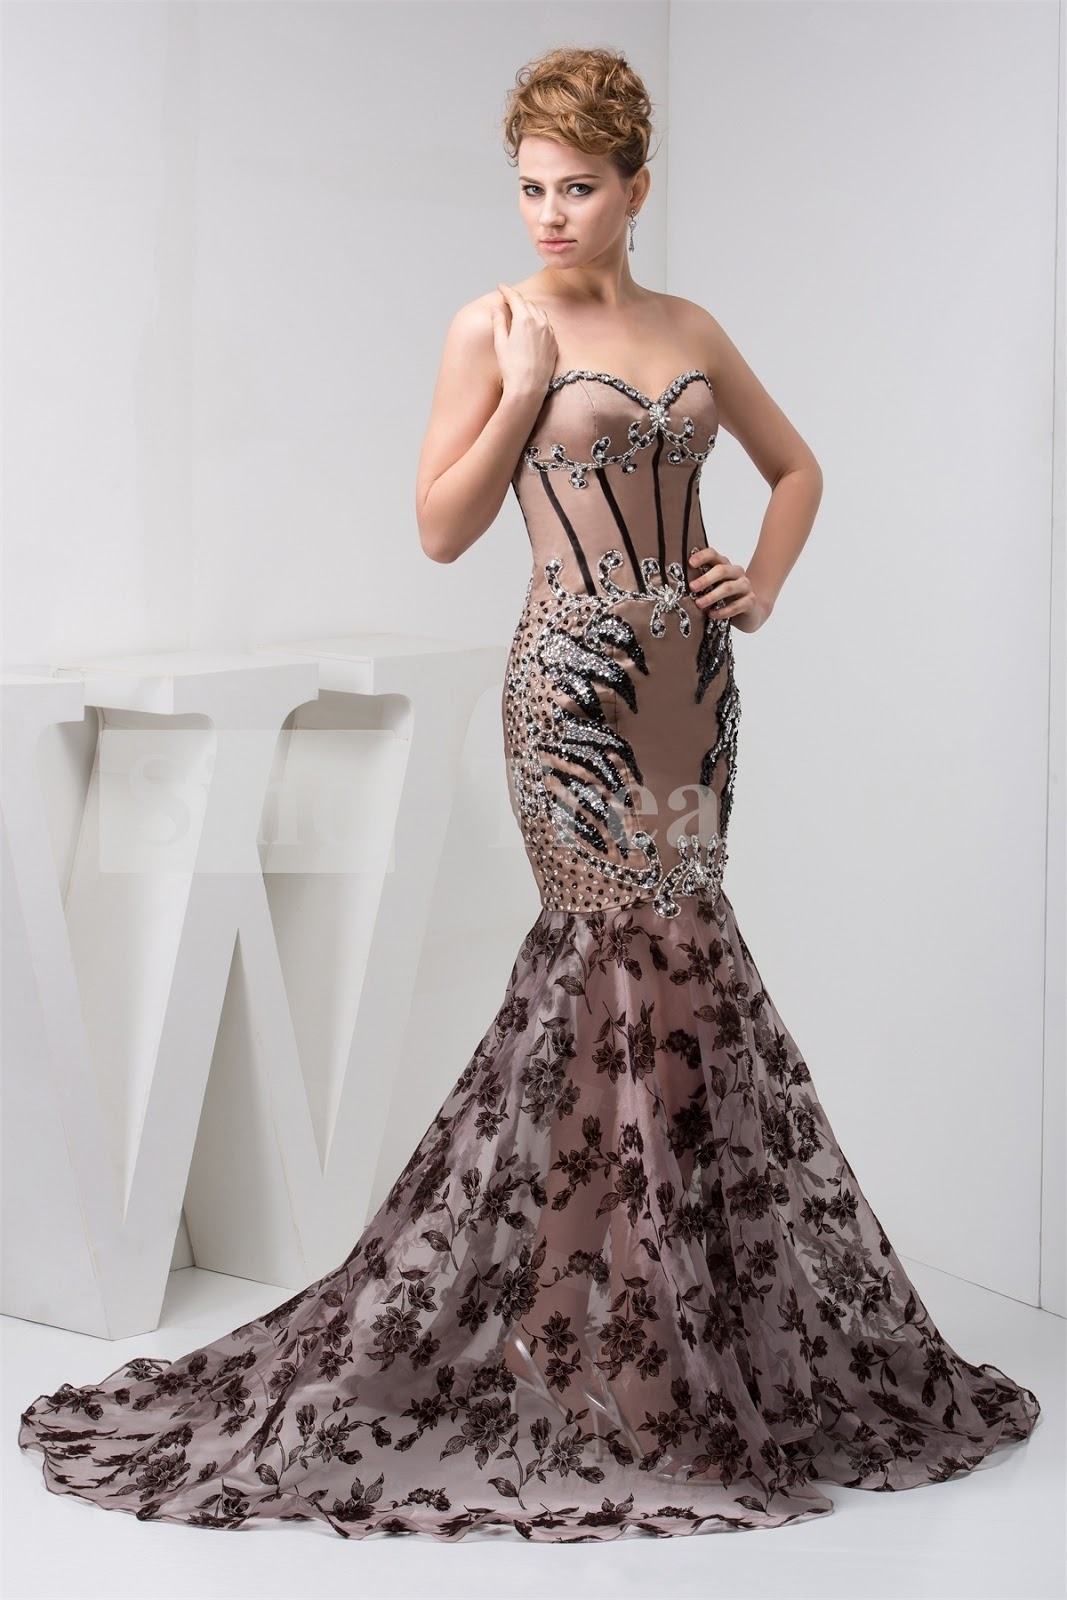 Elegant prom cocktail dresses - photo#25